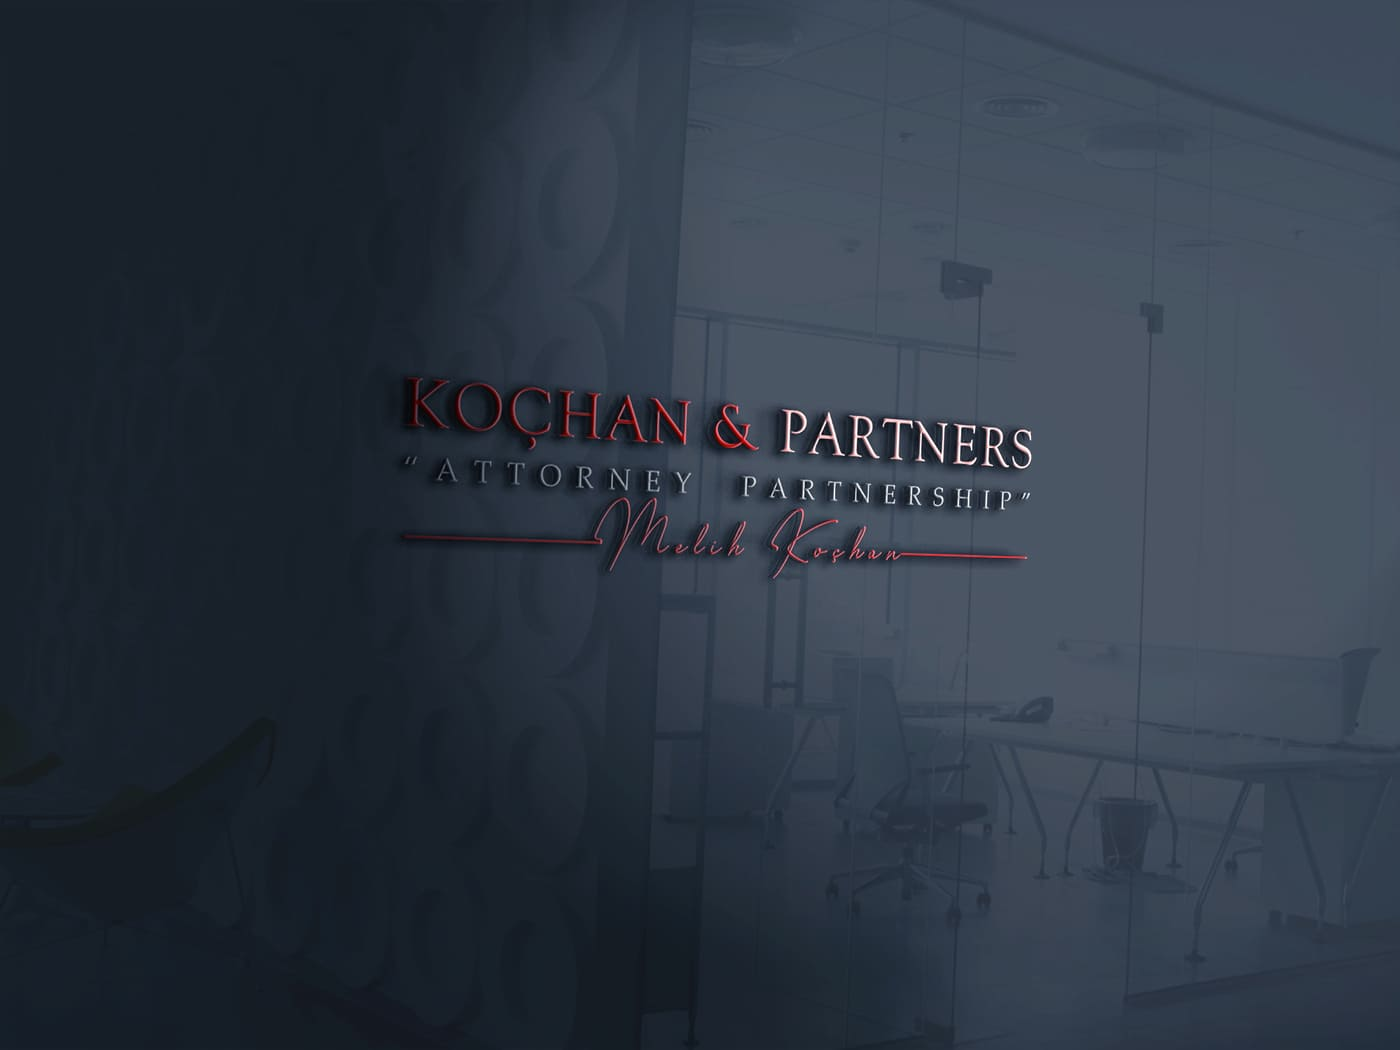 Kochan Partners 'Law Firm'  Av. Melih Koçhan